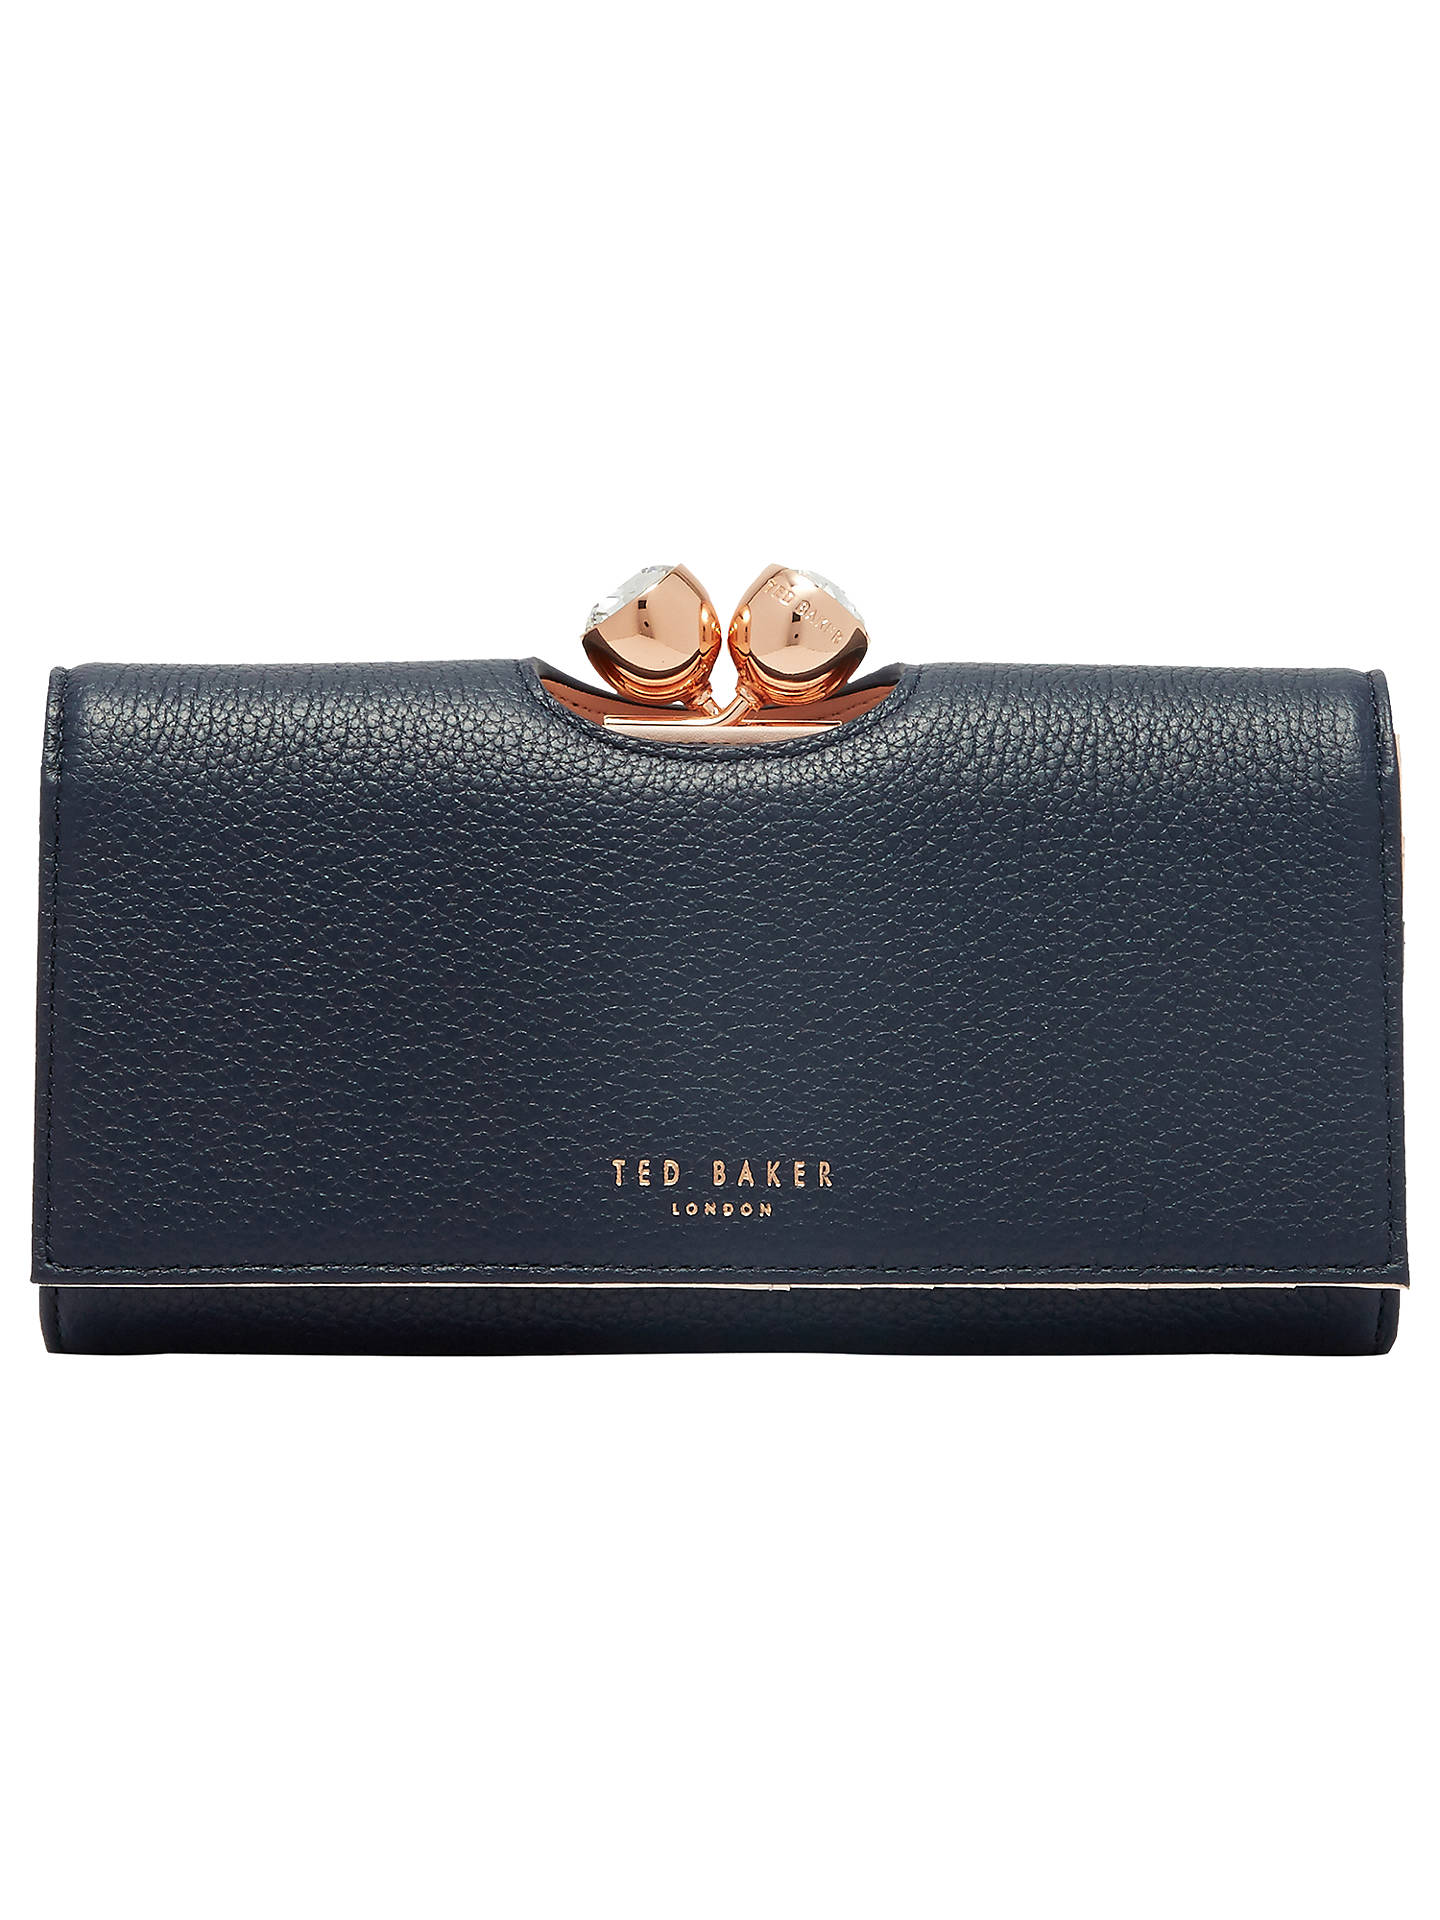 22395051fa3 Buy Ted Baker Tammyy Matinee Purse, Navy Online at johnlewis.com ...